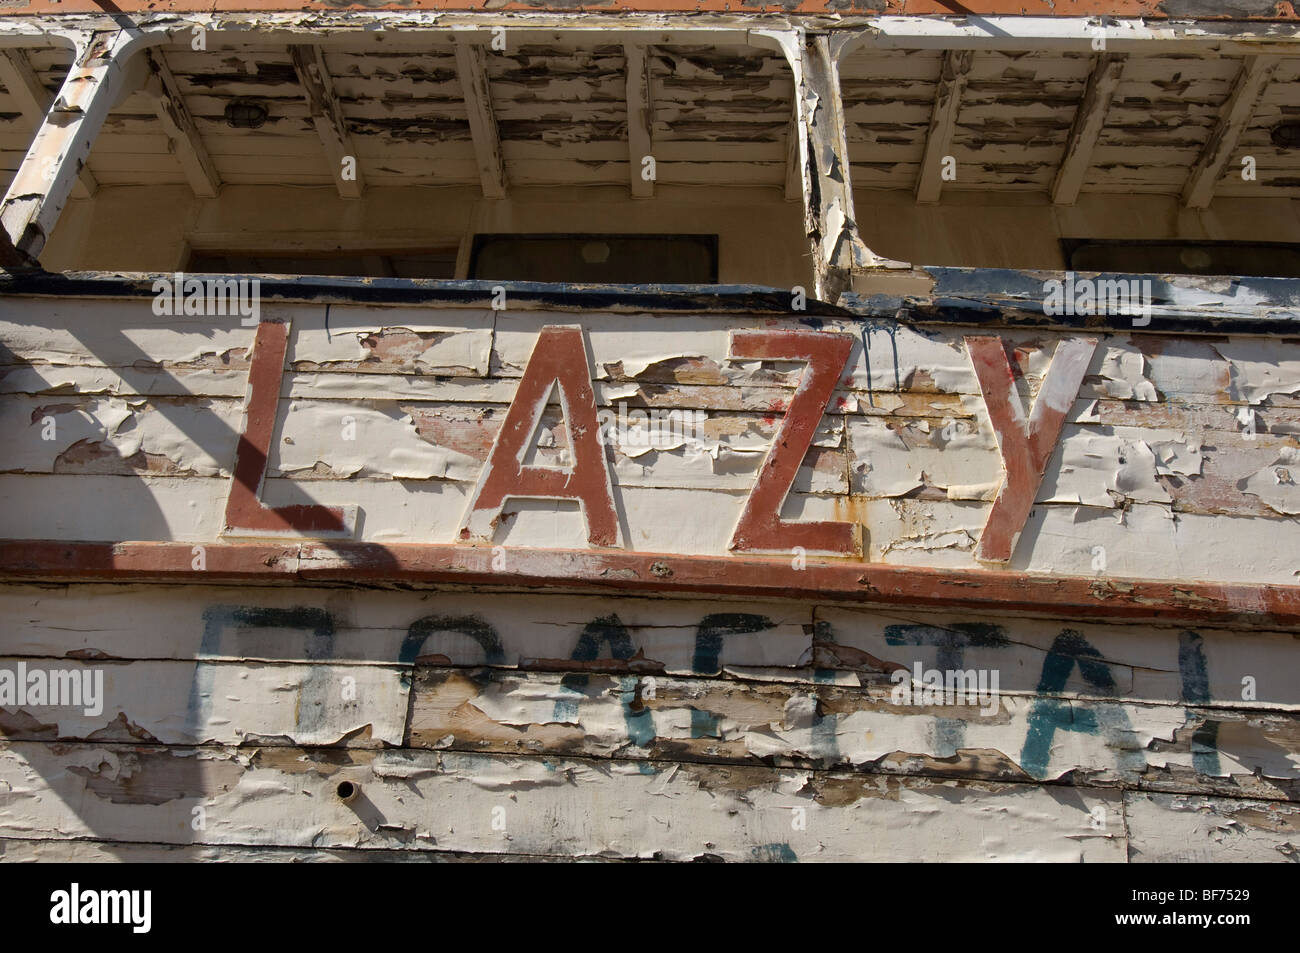 Flaking paint on an old pleasure steamer called 'Lazy Days' awaiting restoration in a boatyard in Greece. - Stock Image